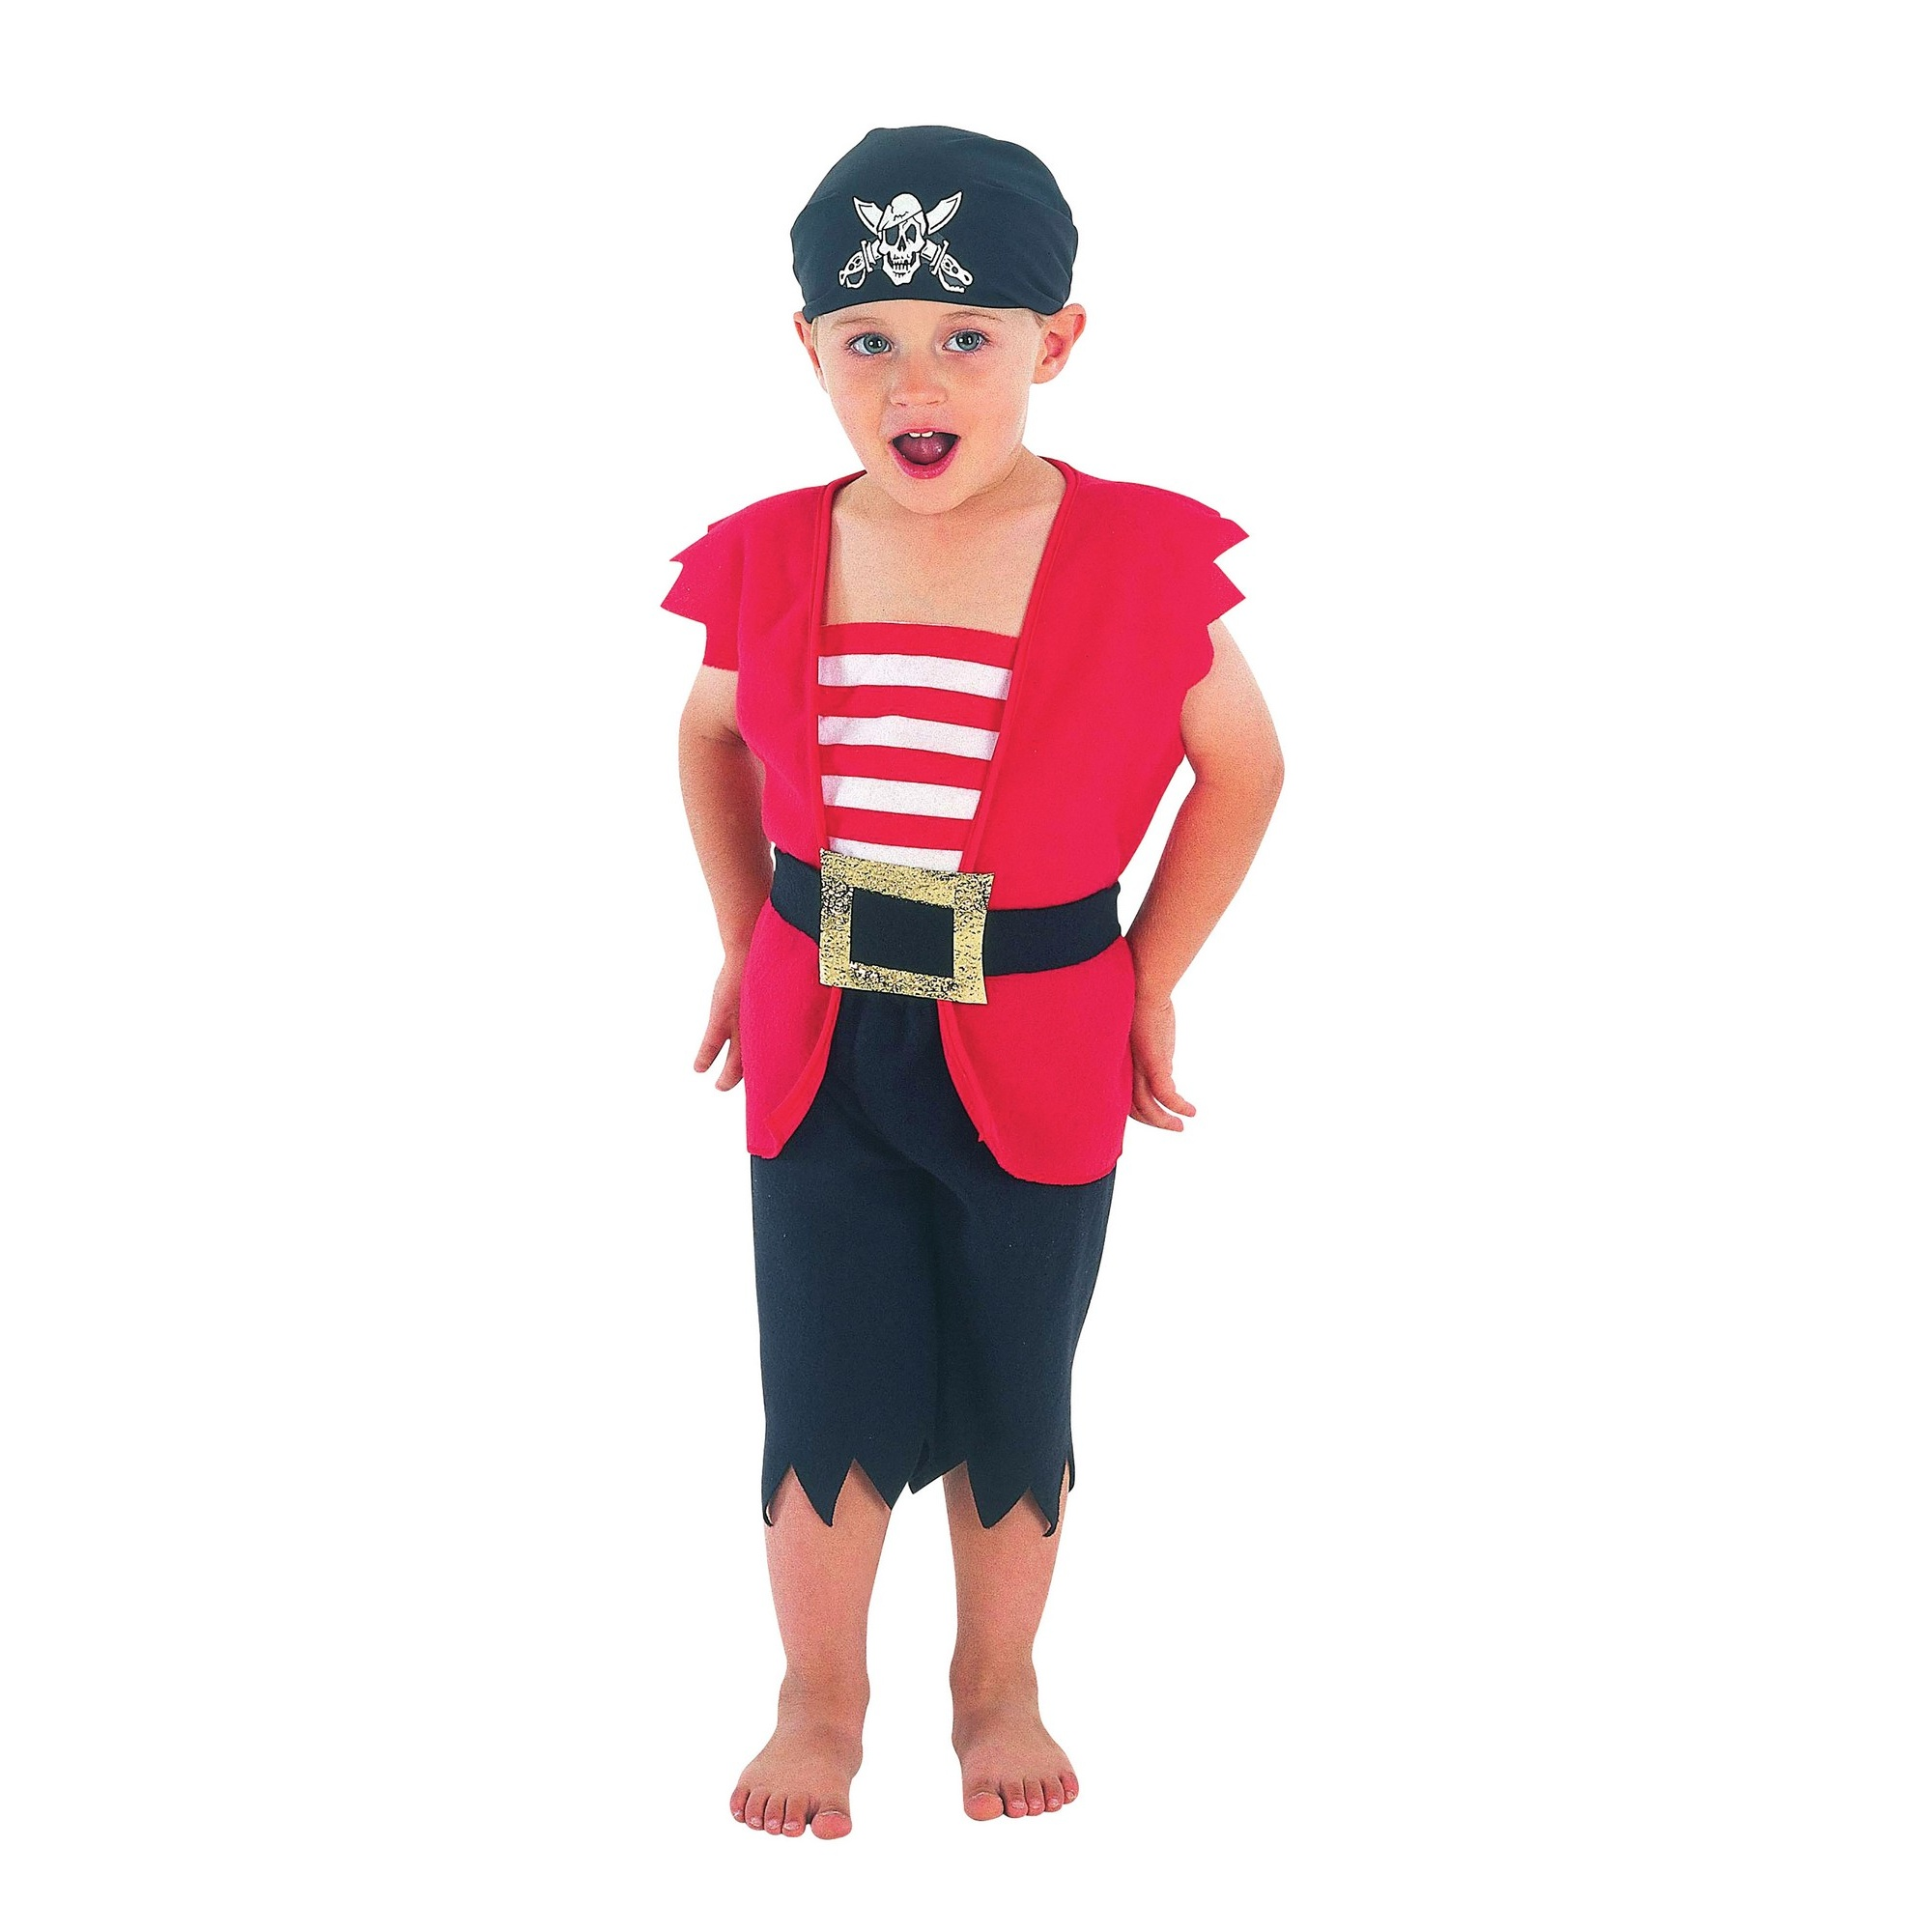 Bristol Novelty Boys Waistcoat And Shorts Pirate Costume (One Size) (Black/Red/White)